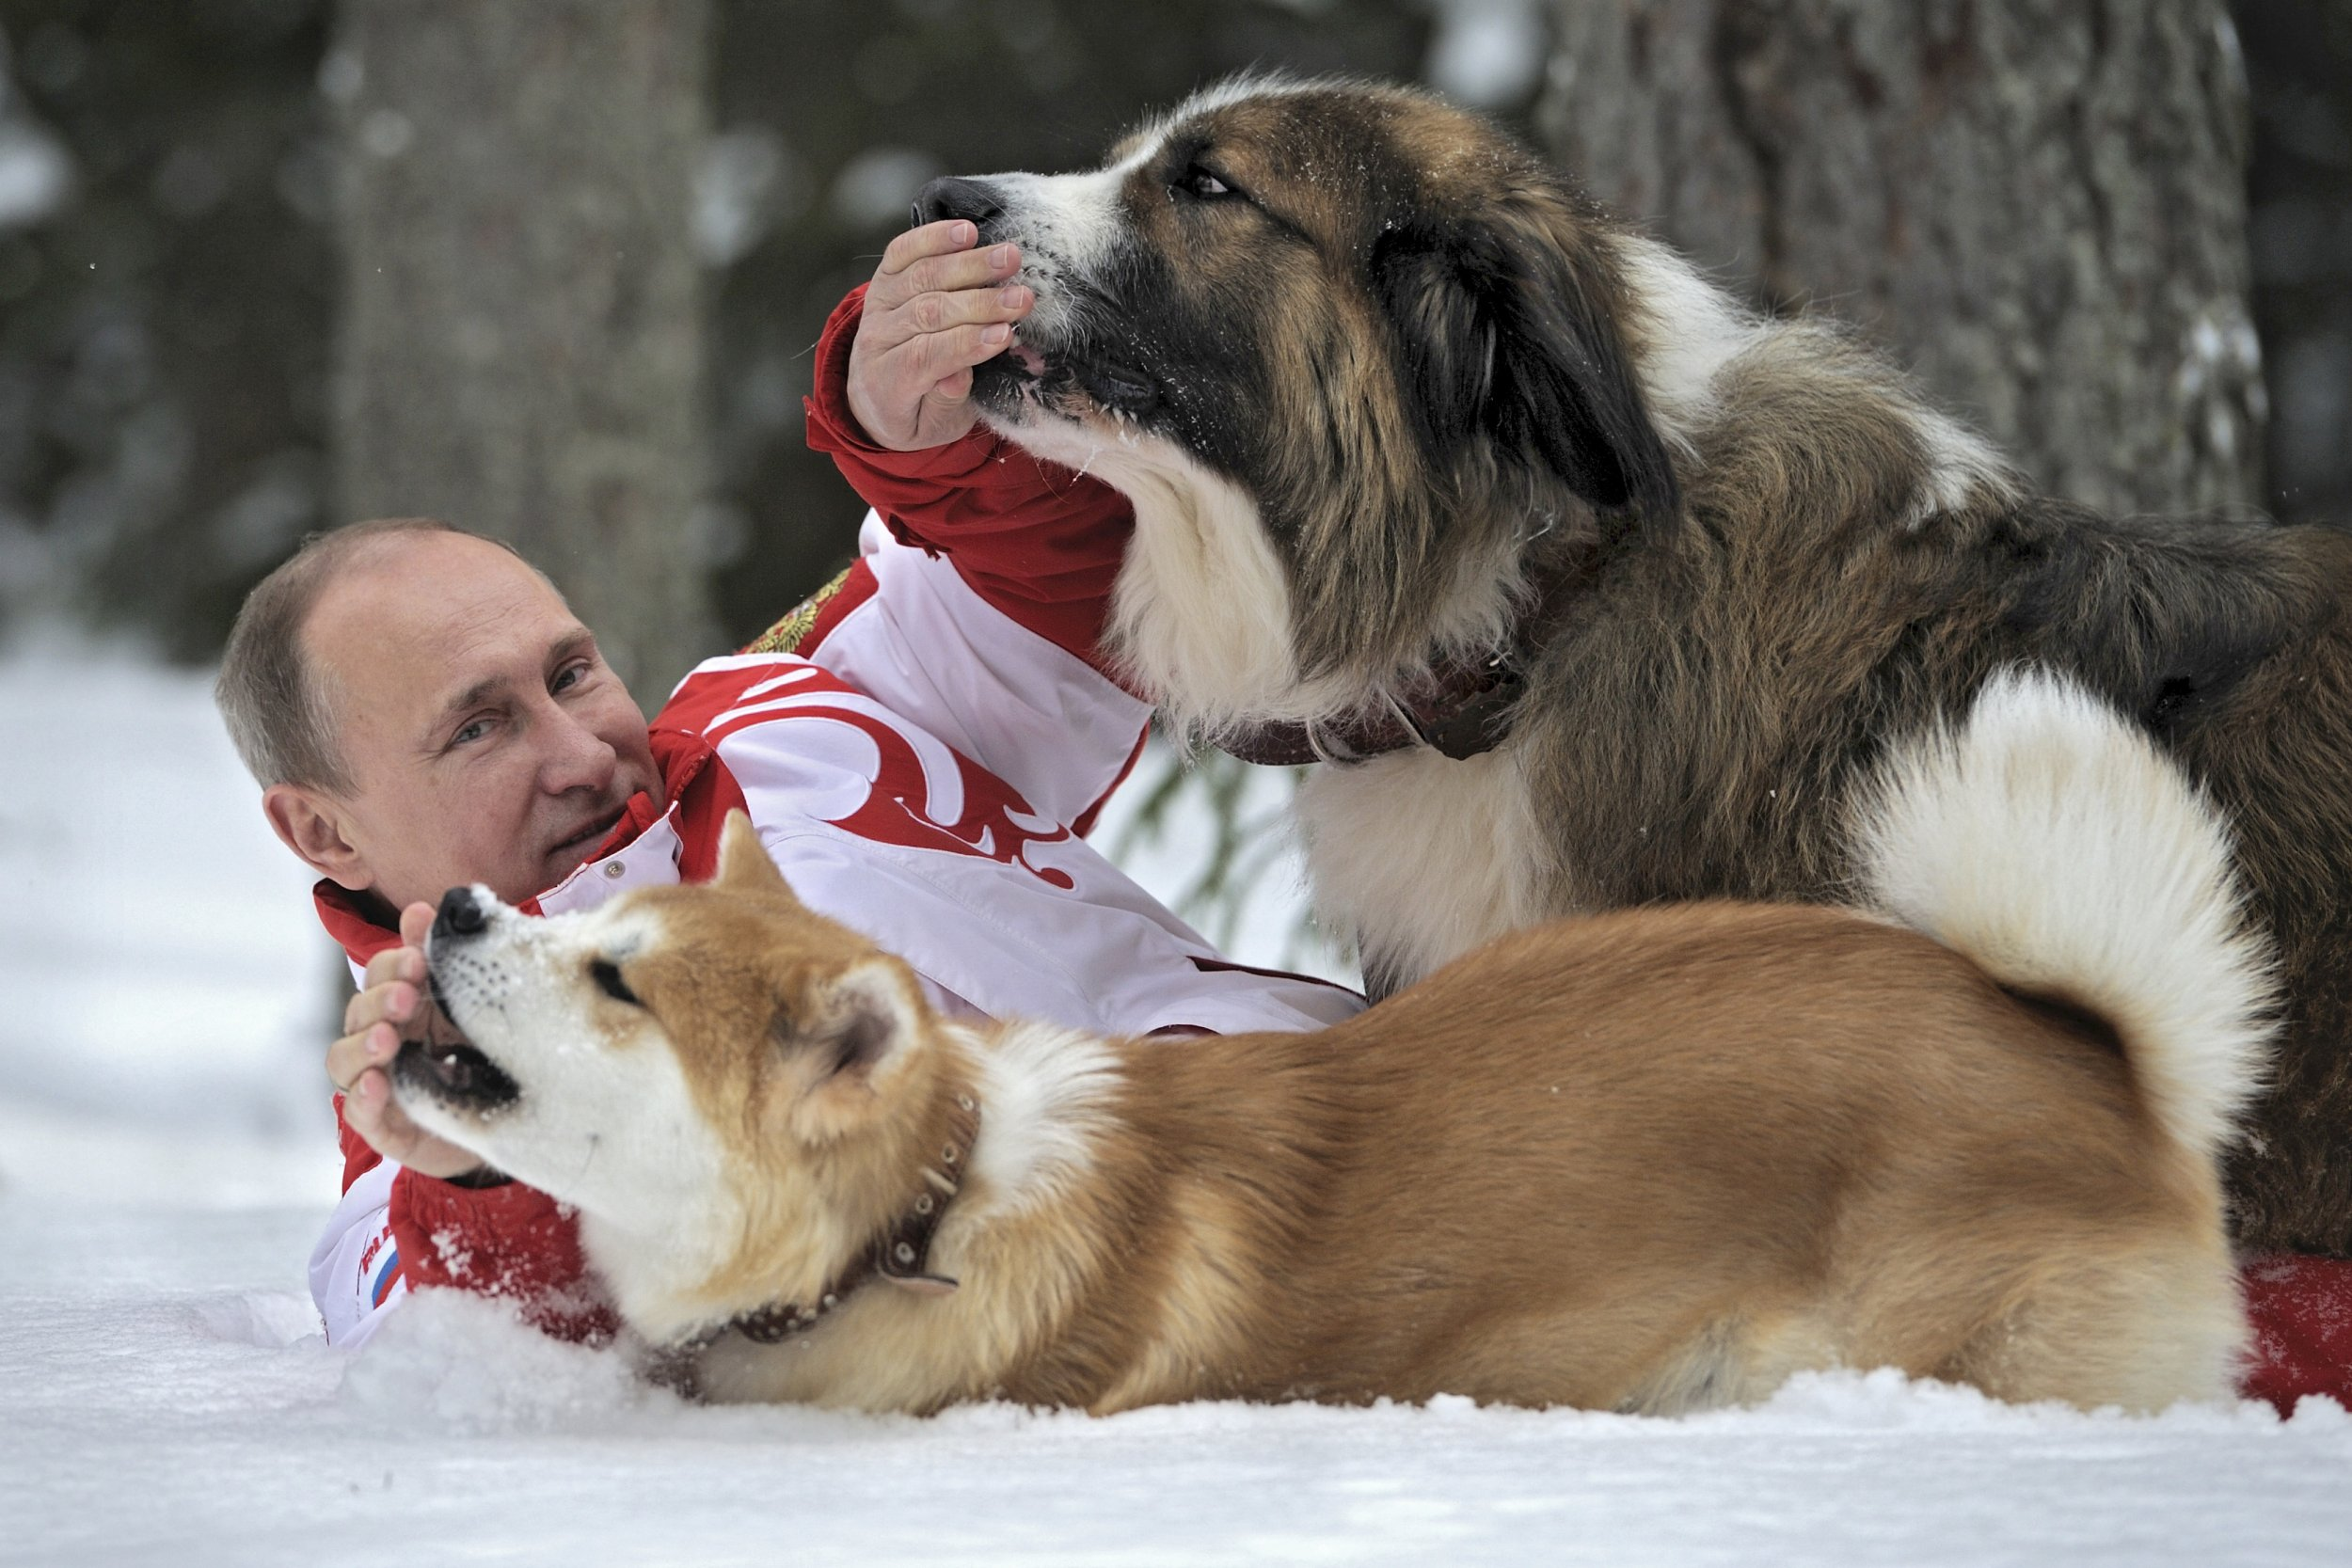 Putin dogs in snow